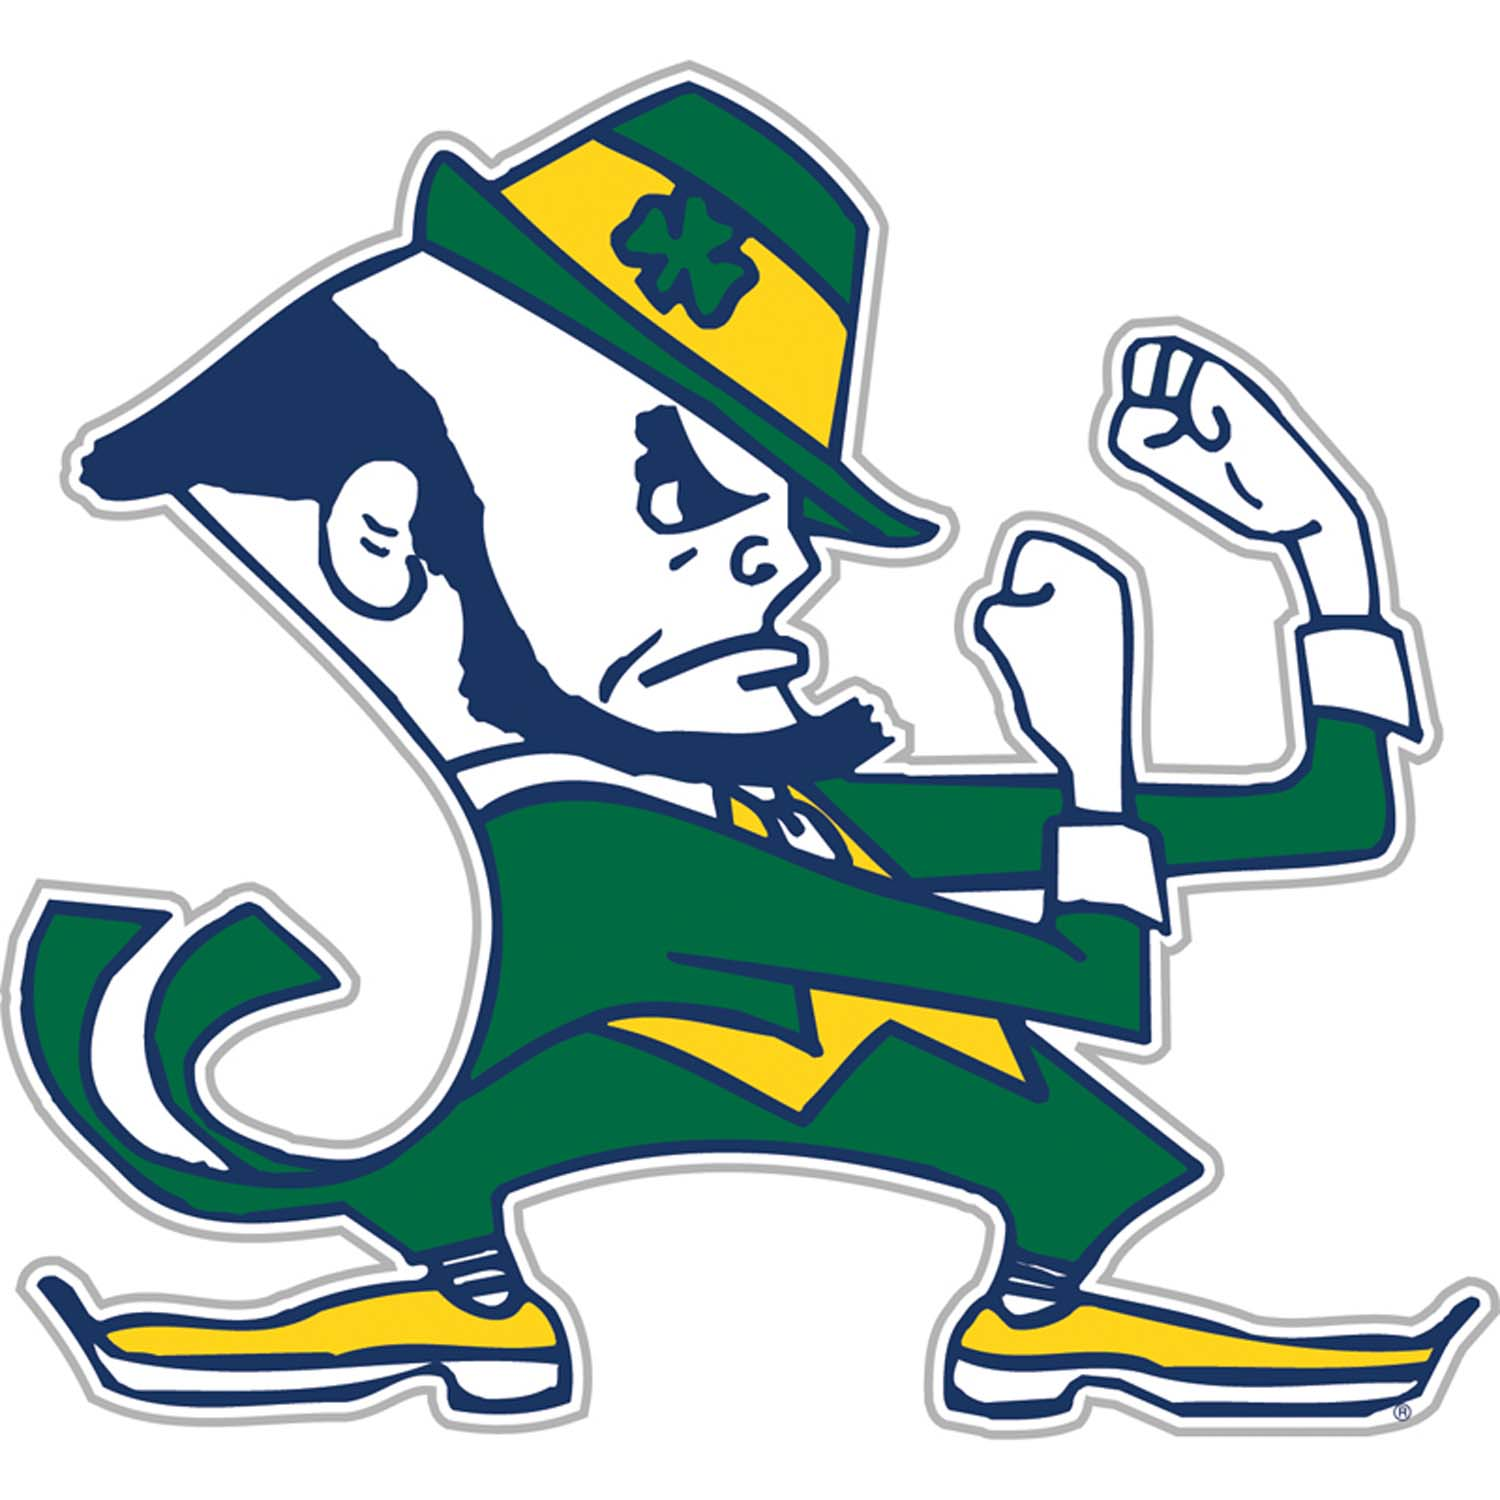 People want Notre Dame to remove leprechaun mascot because ...